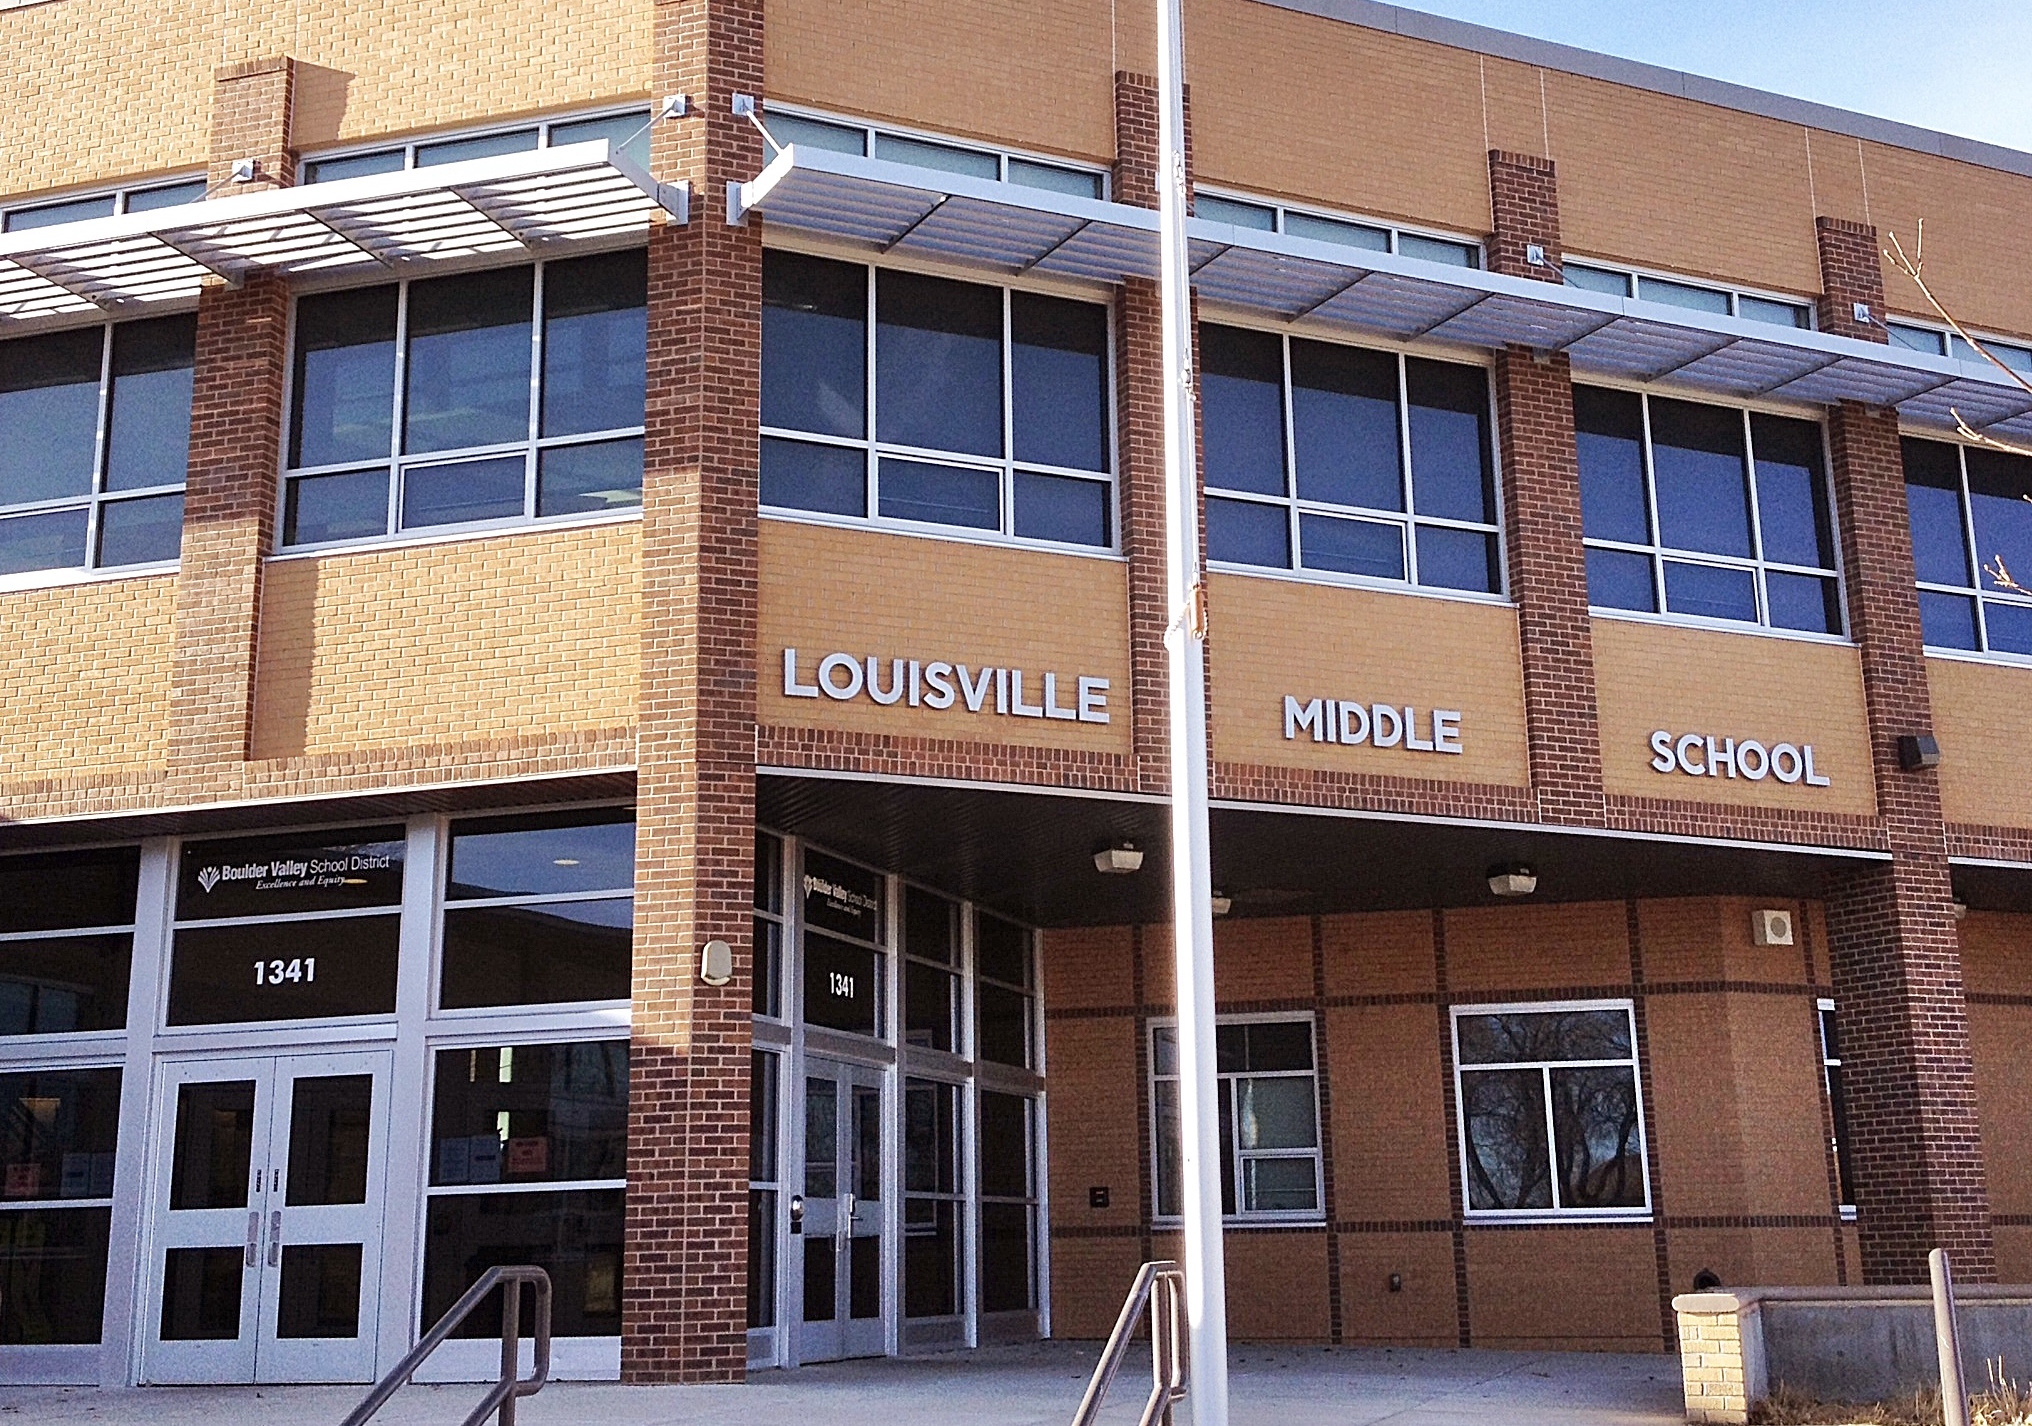 Louisville Middle School